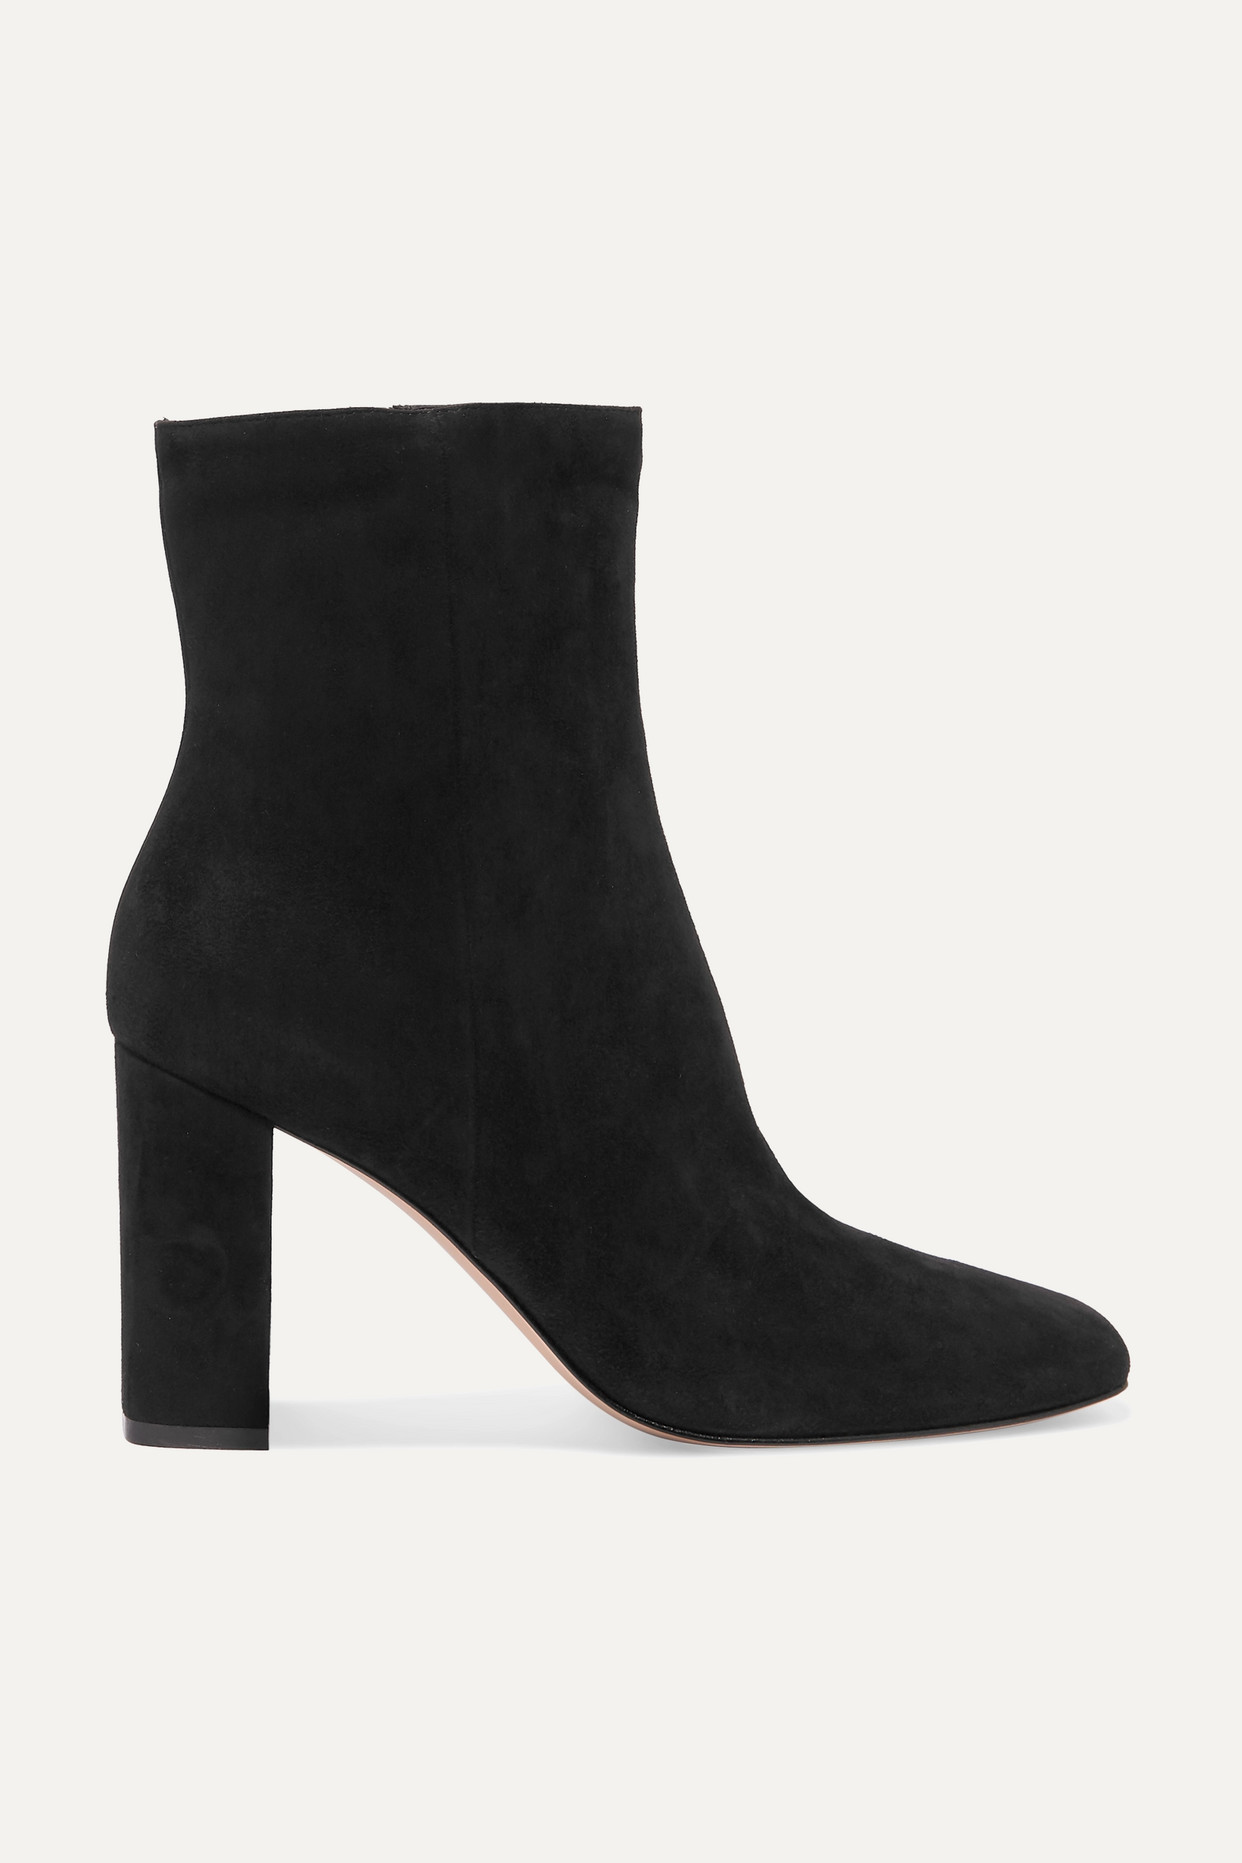 GIANVITO ROSSI - 70 Suede Ankle Boots - Black - IT37